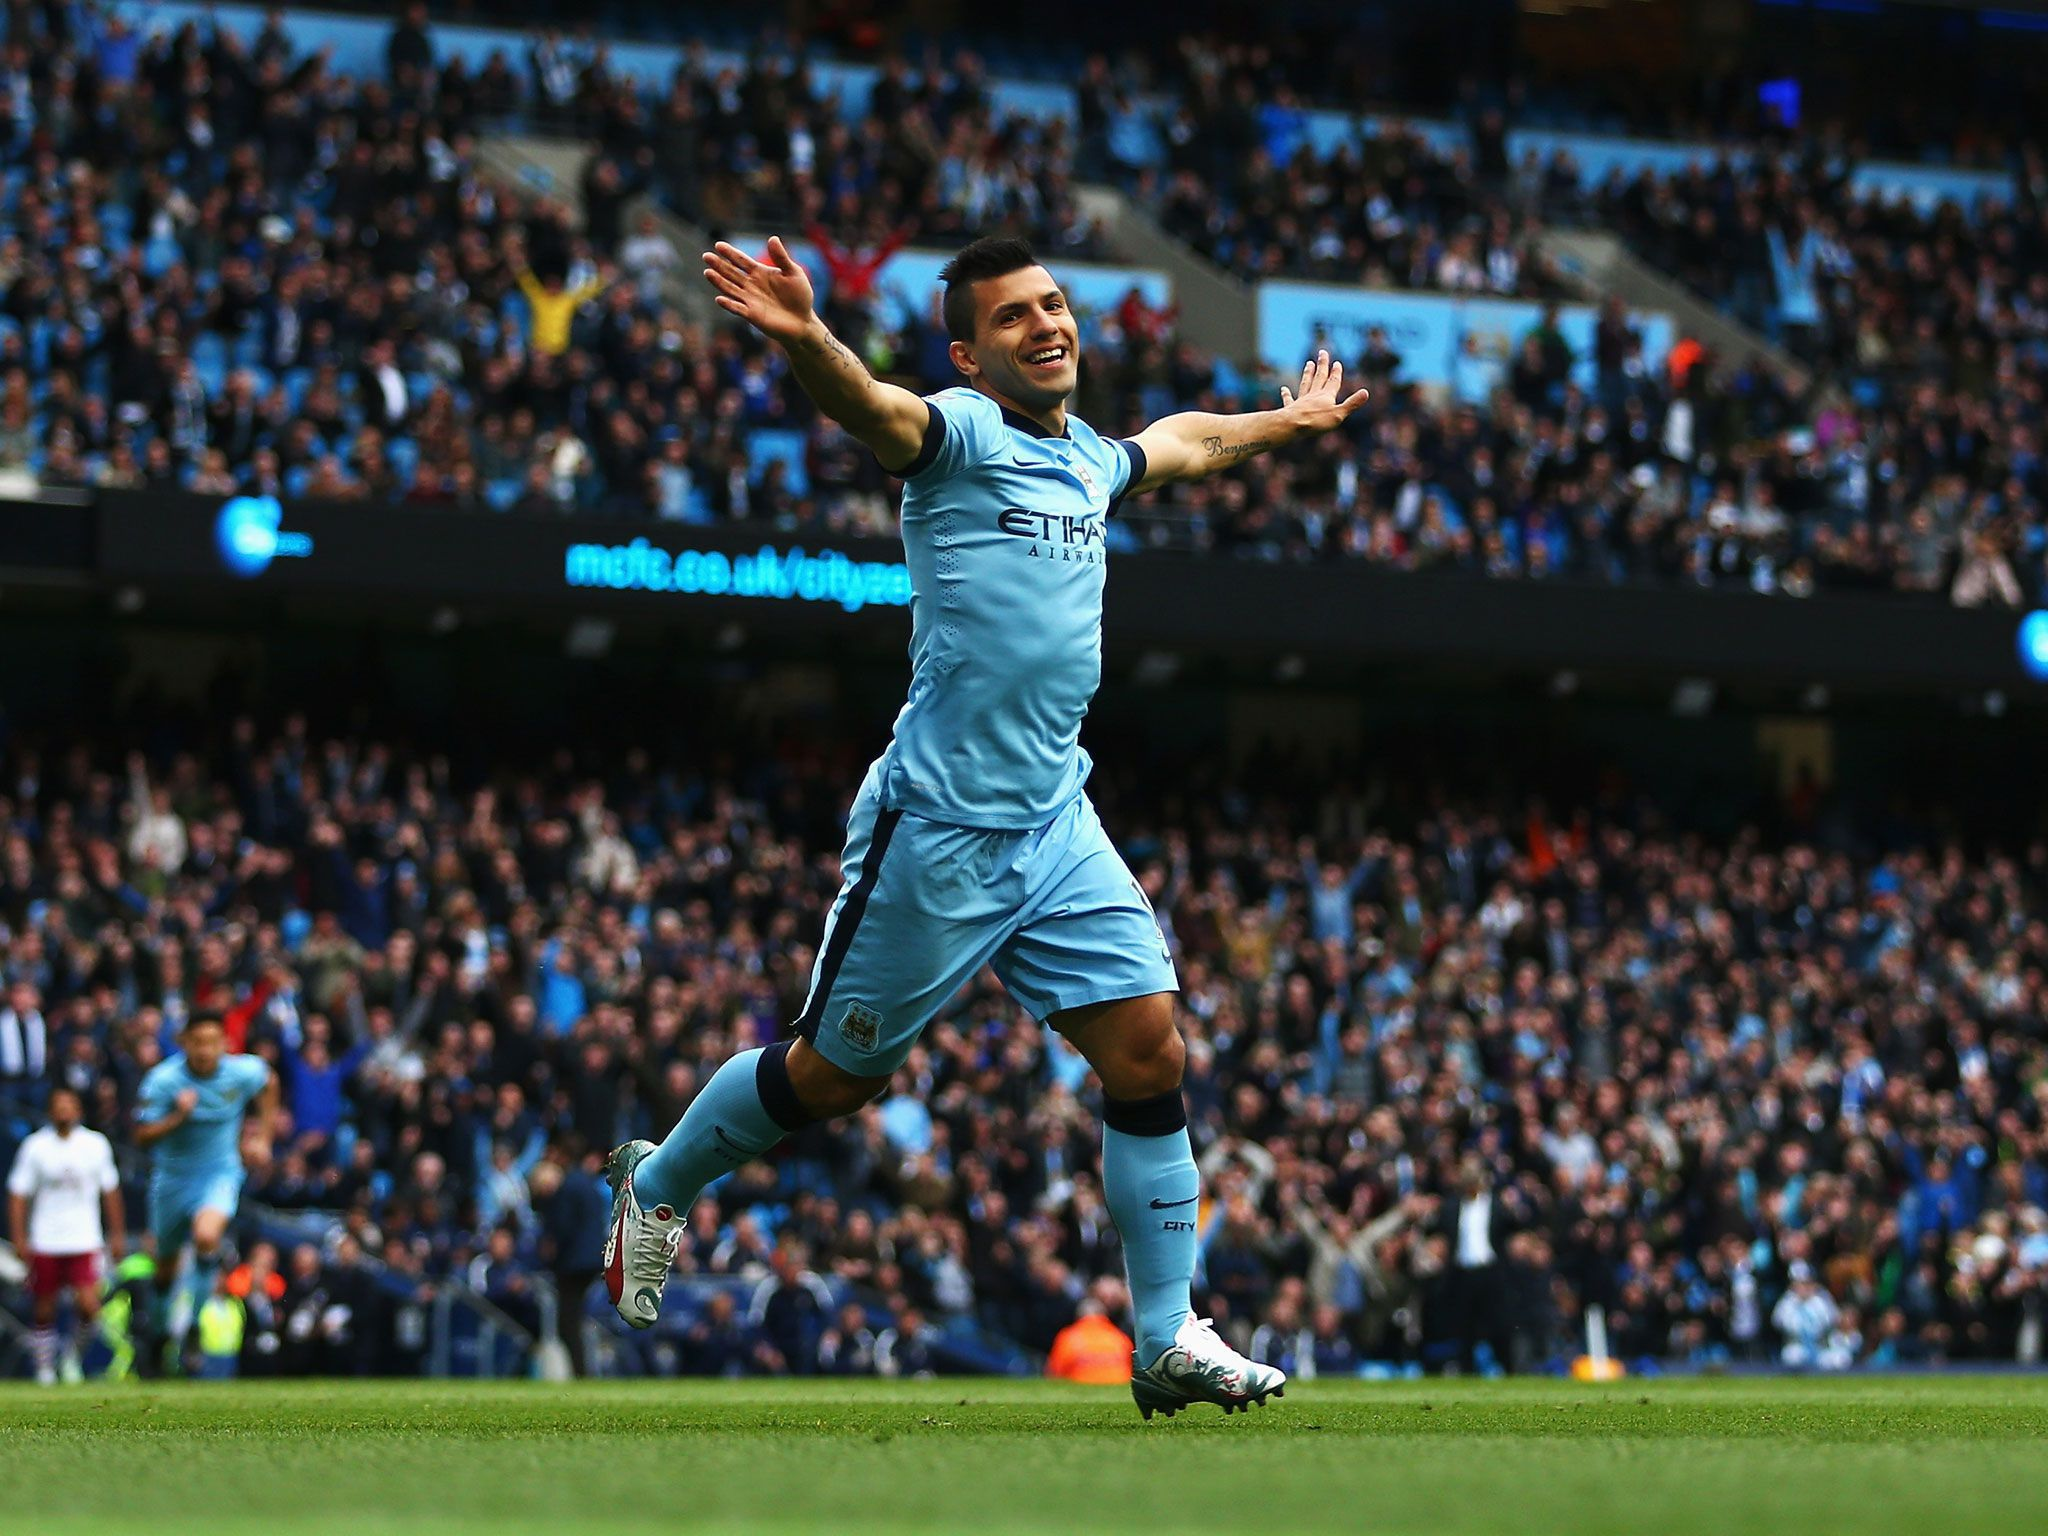 Sergio Aguero 651615 Wallpapers High Quality: Sergio Aguero High Quality Wallpapers